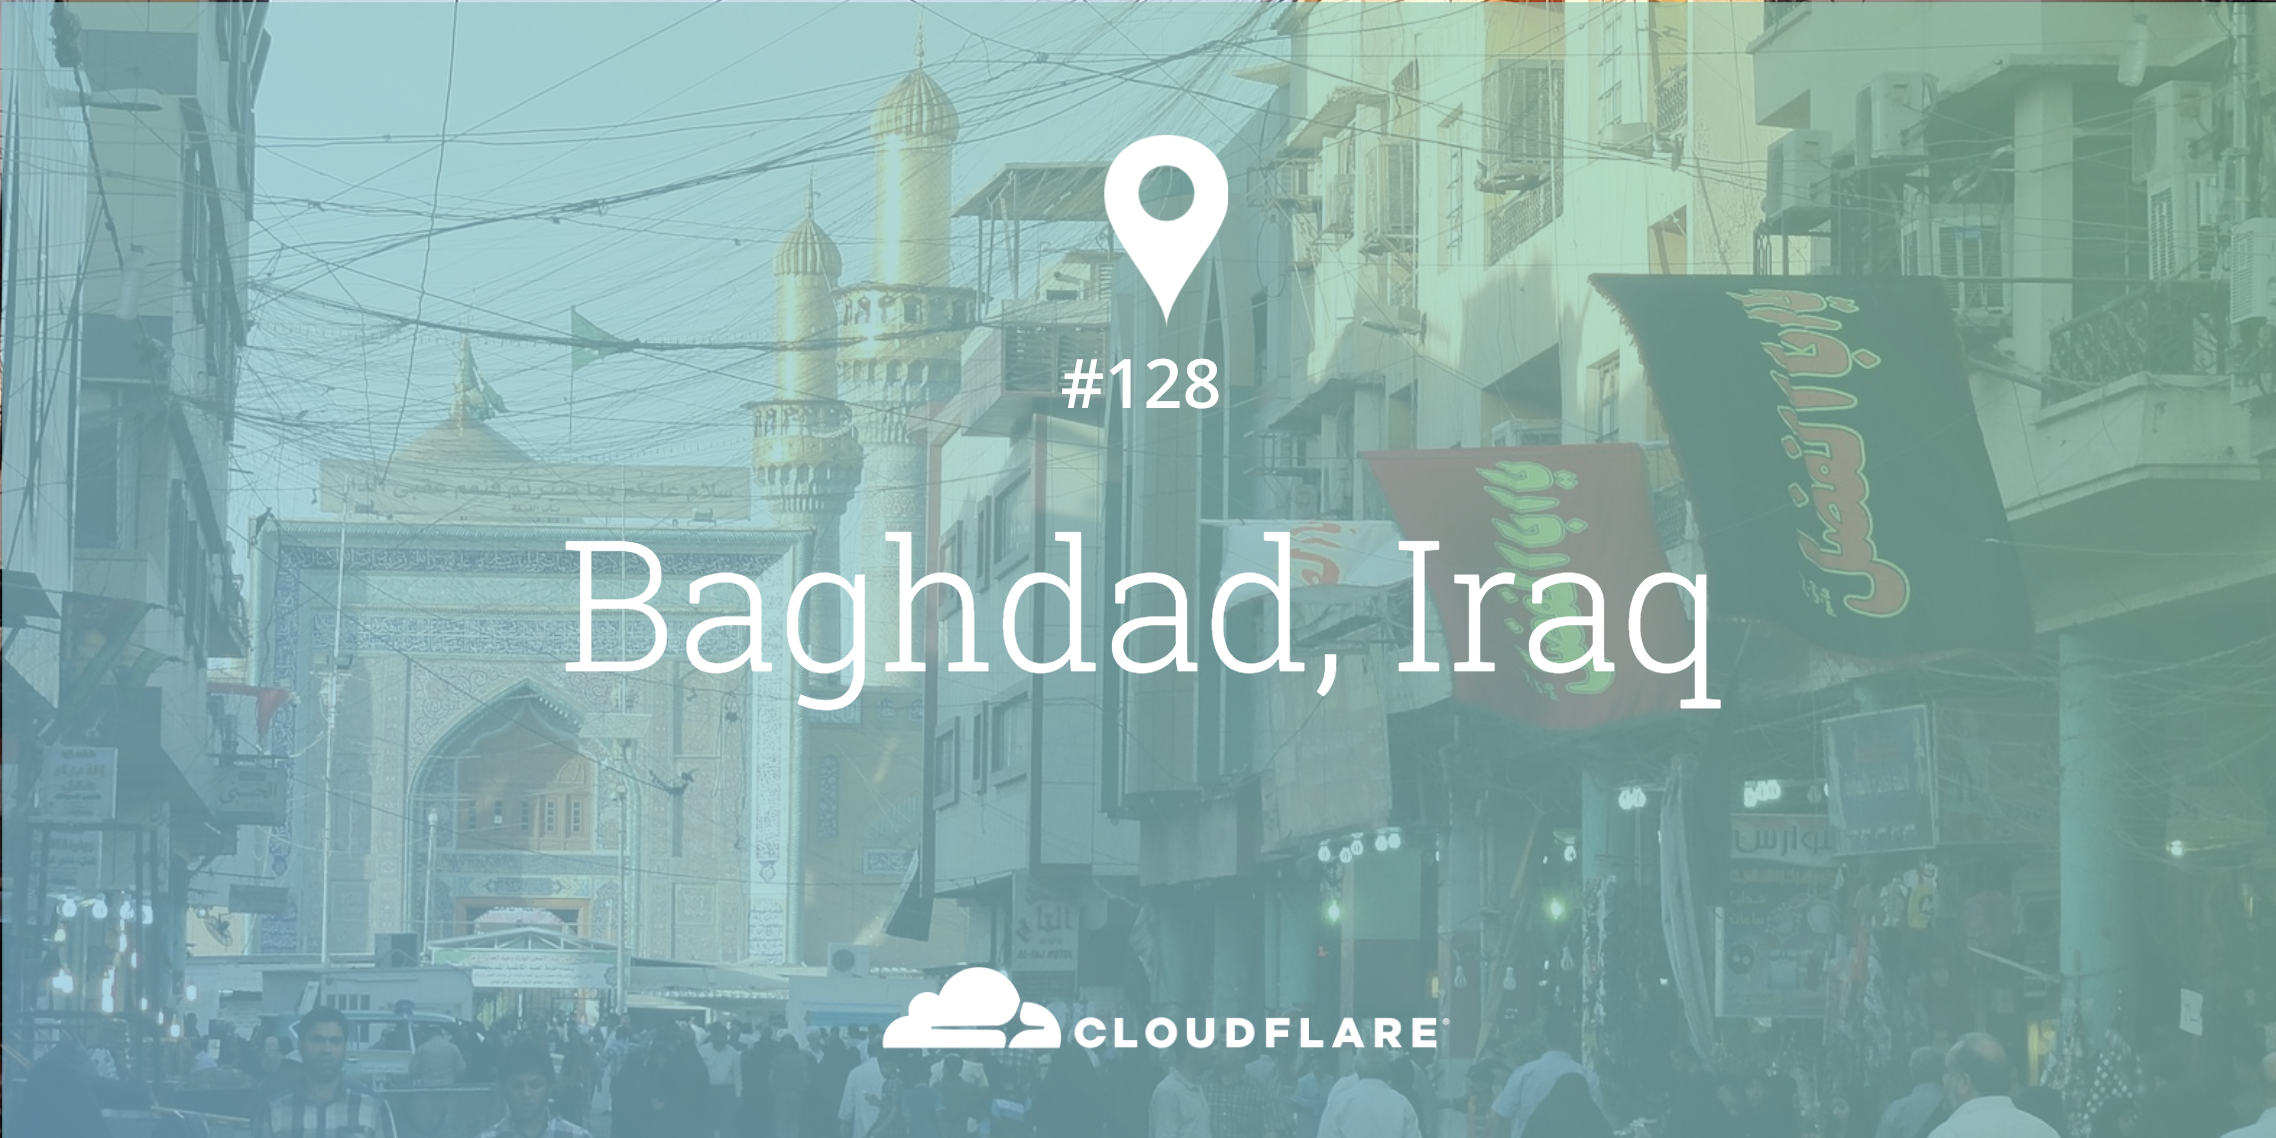 Baghdad, Iraq: Cloudflare's 128th Data Center